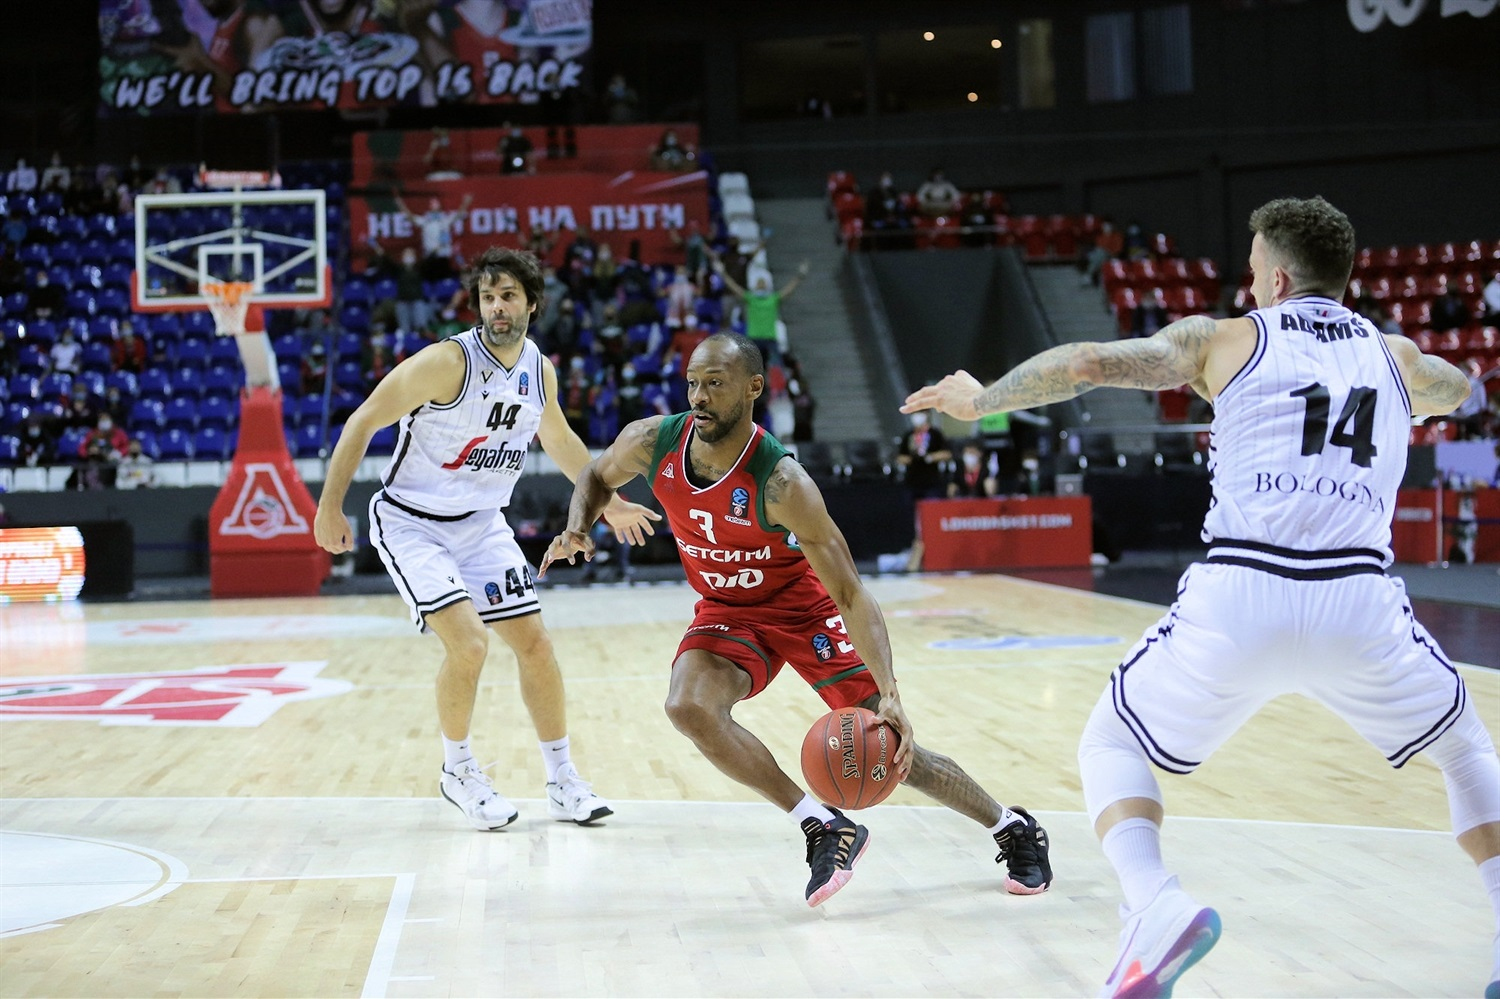 Will Cummings - Lokomotiv Kuban Krasnodar (photo Lokomotiv - Fedor Aebor) - EC20